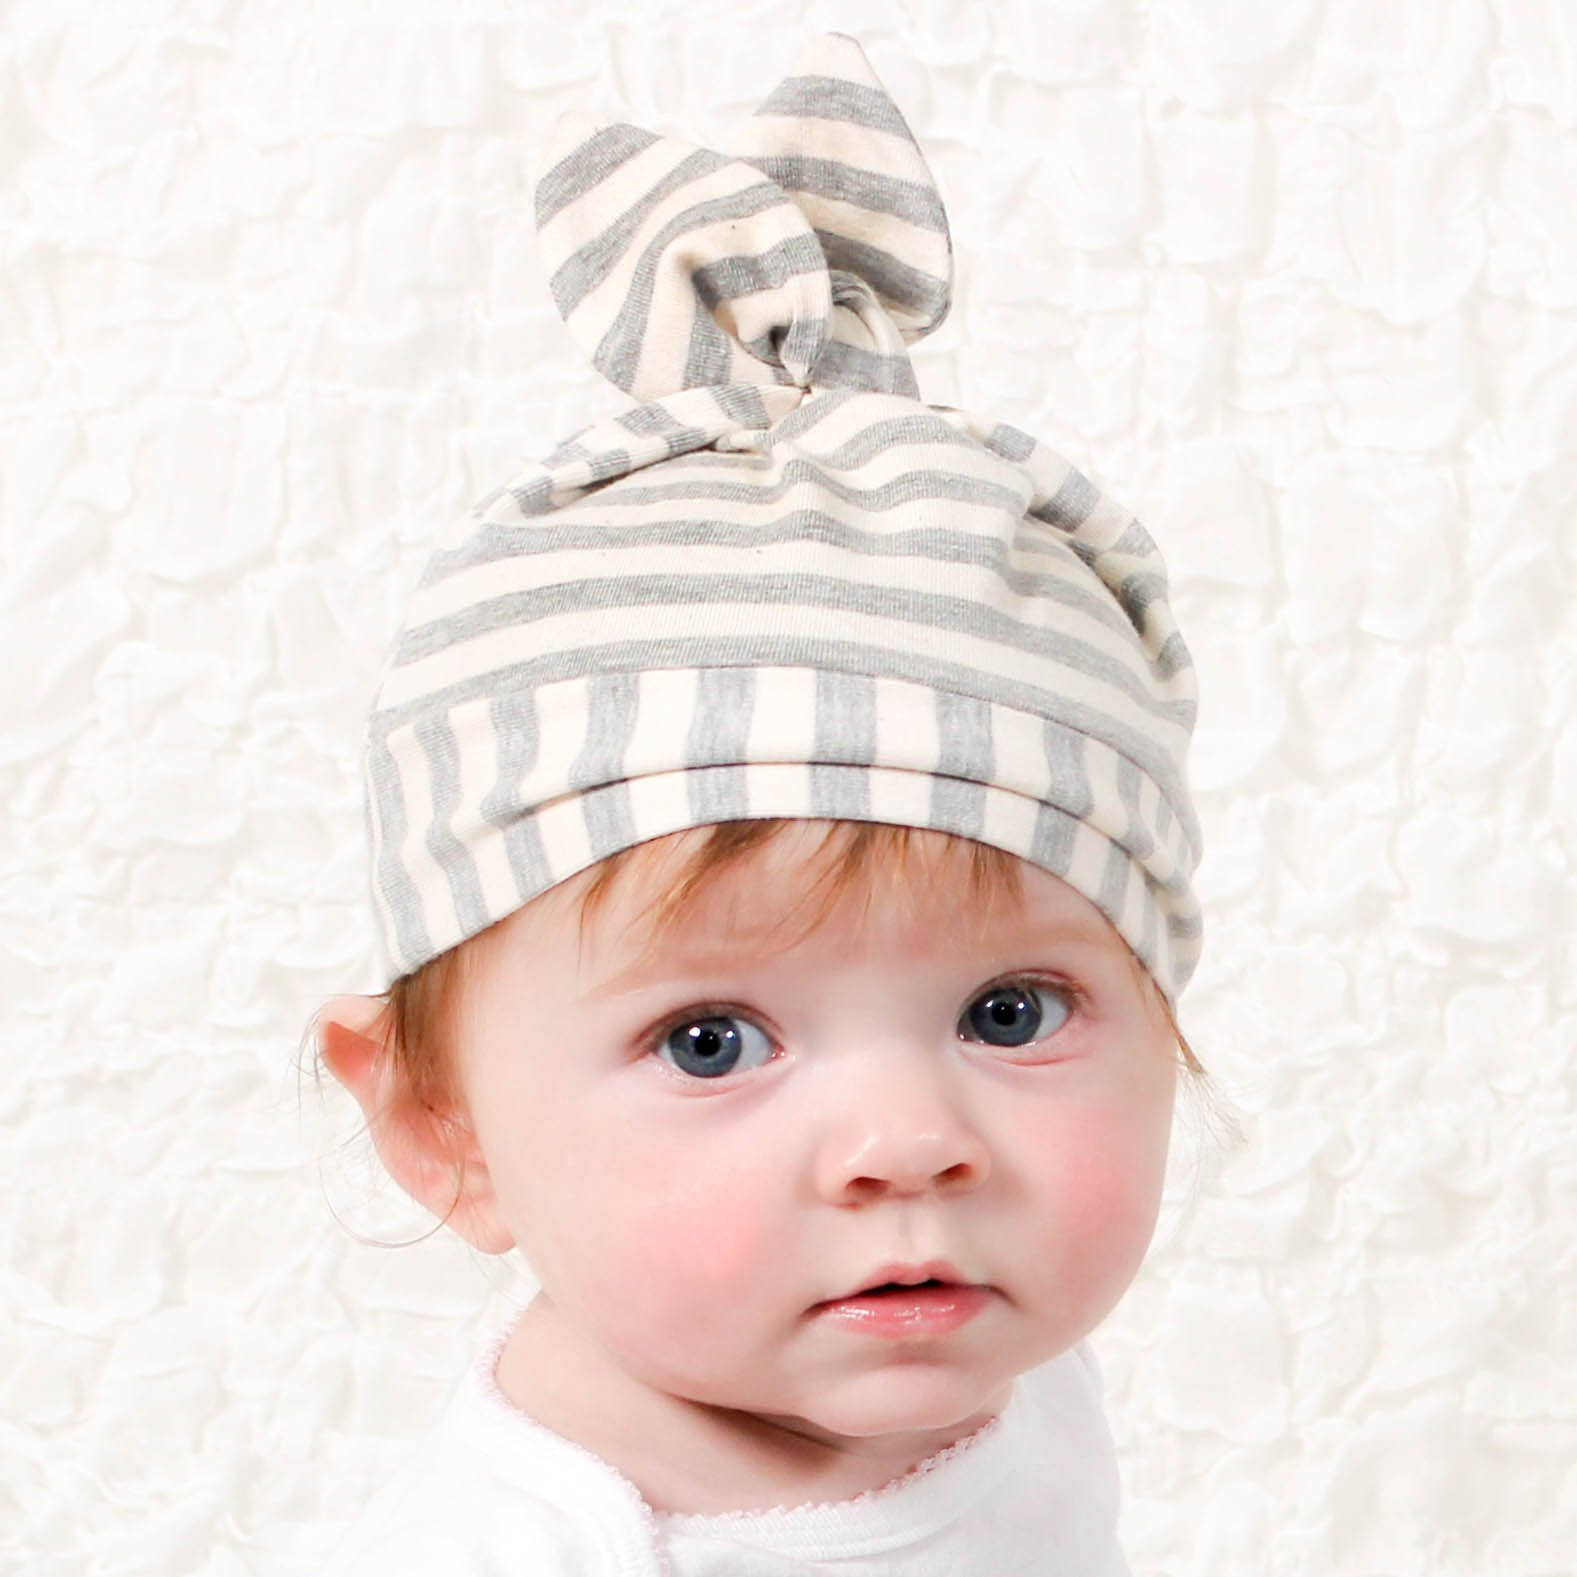 Cozy Cocoon Baby Cocoon Swaddle and Matching Hat, Gray Stripes, 0-3 months by Cozy Cocoon (Image #5)